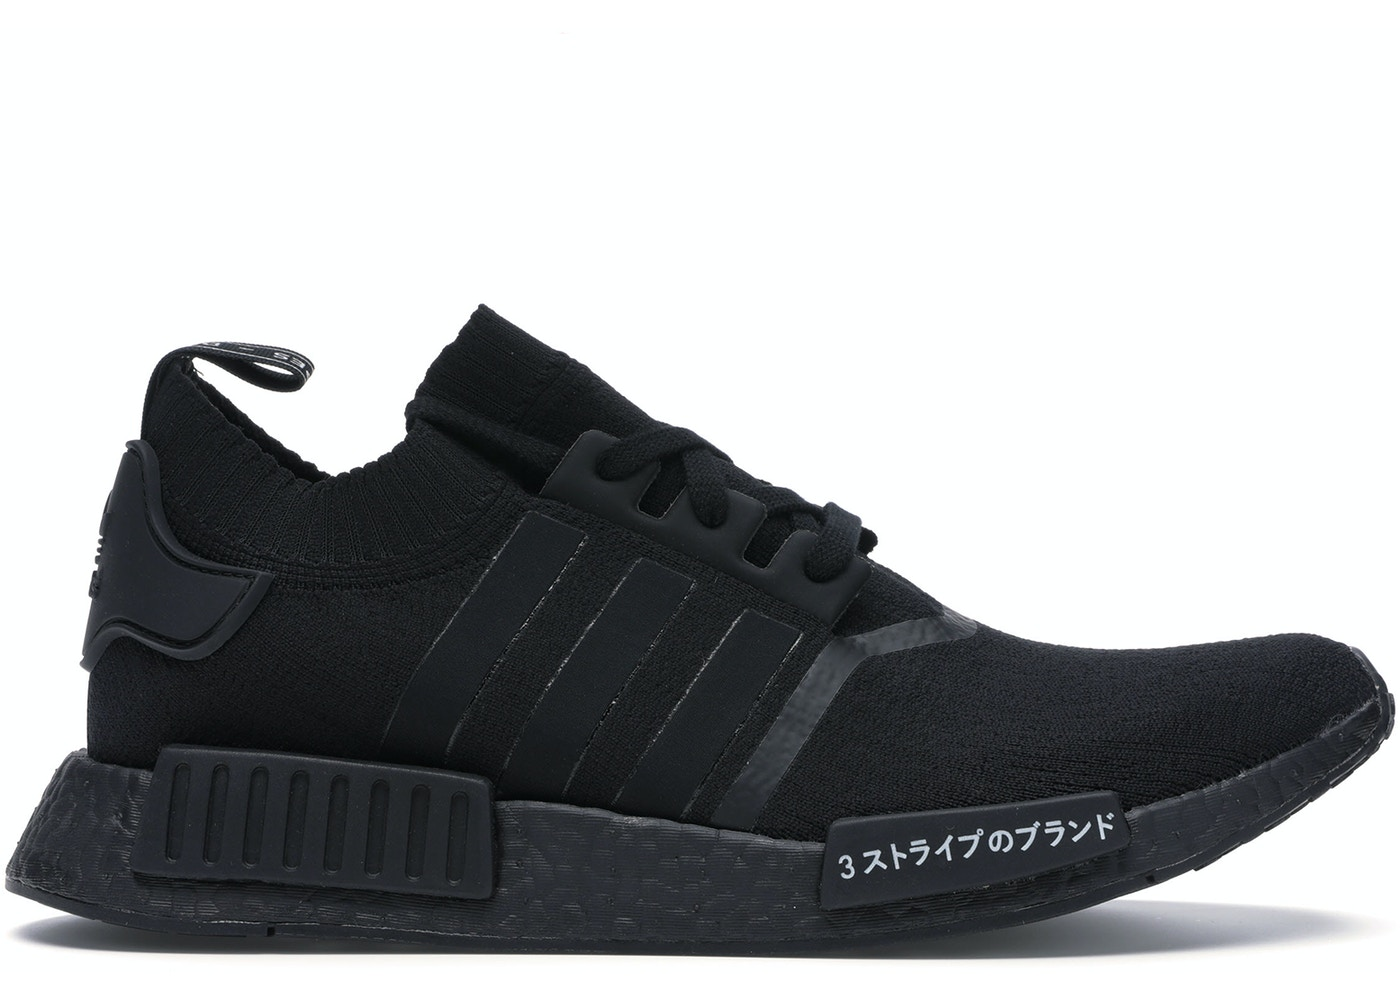 9d077cb2b47cb adidas NMD R1 Japan Triple Black - BZ0220